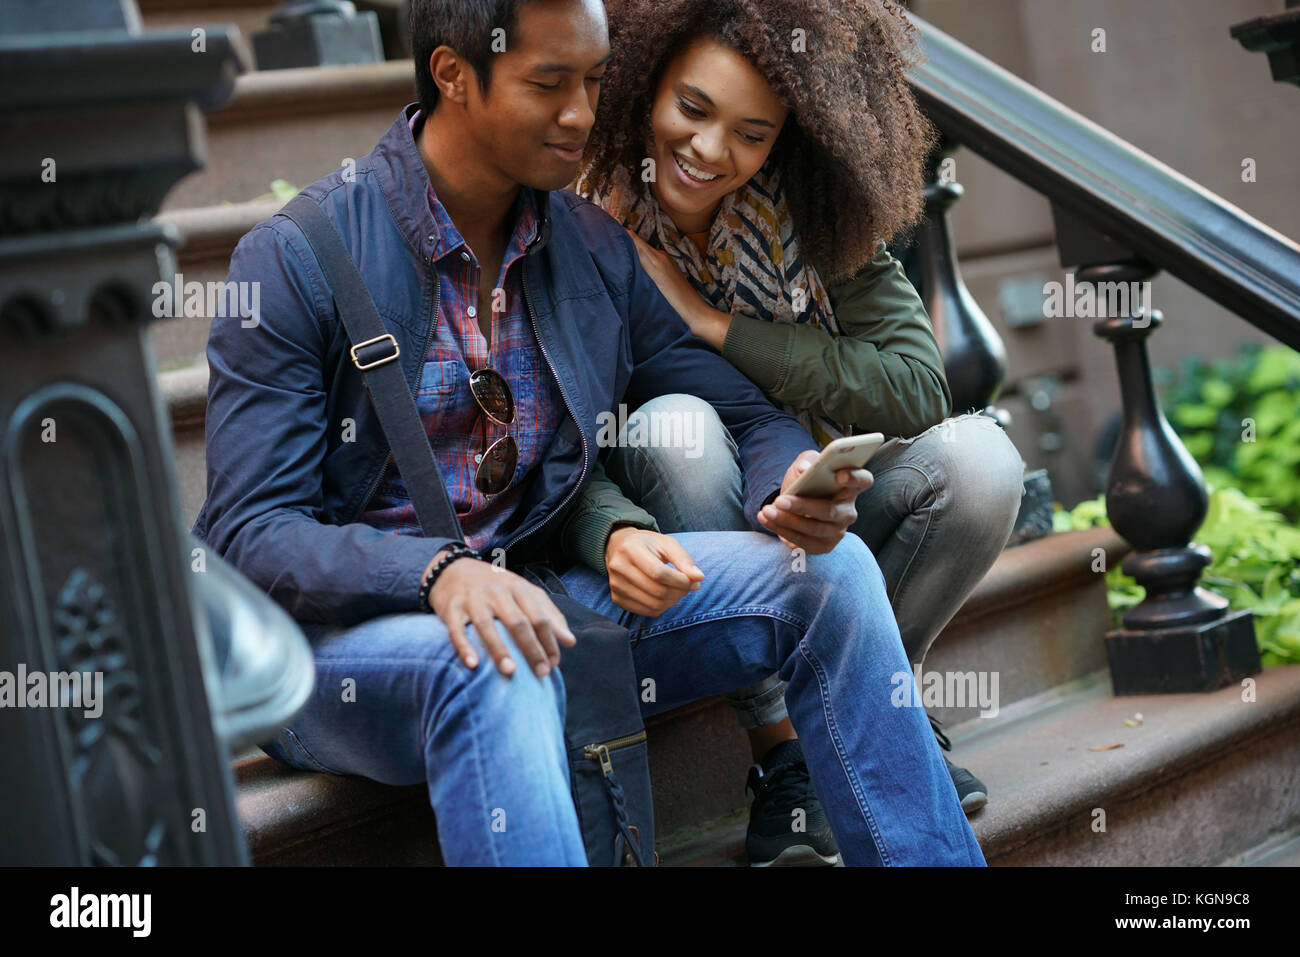 Mixed-race couple taking selfie picture - Stock Image